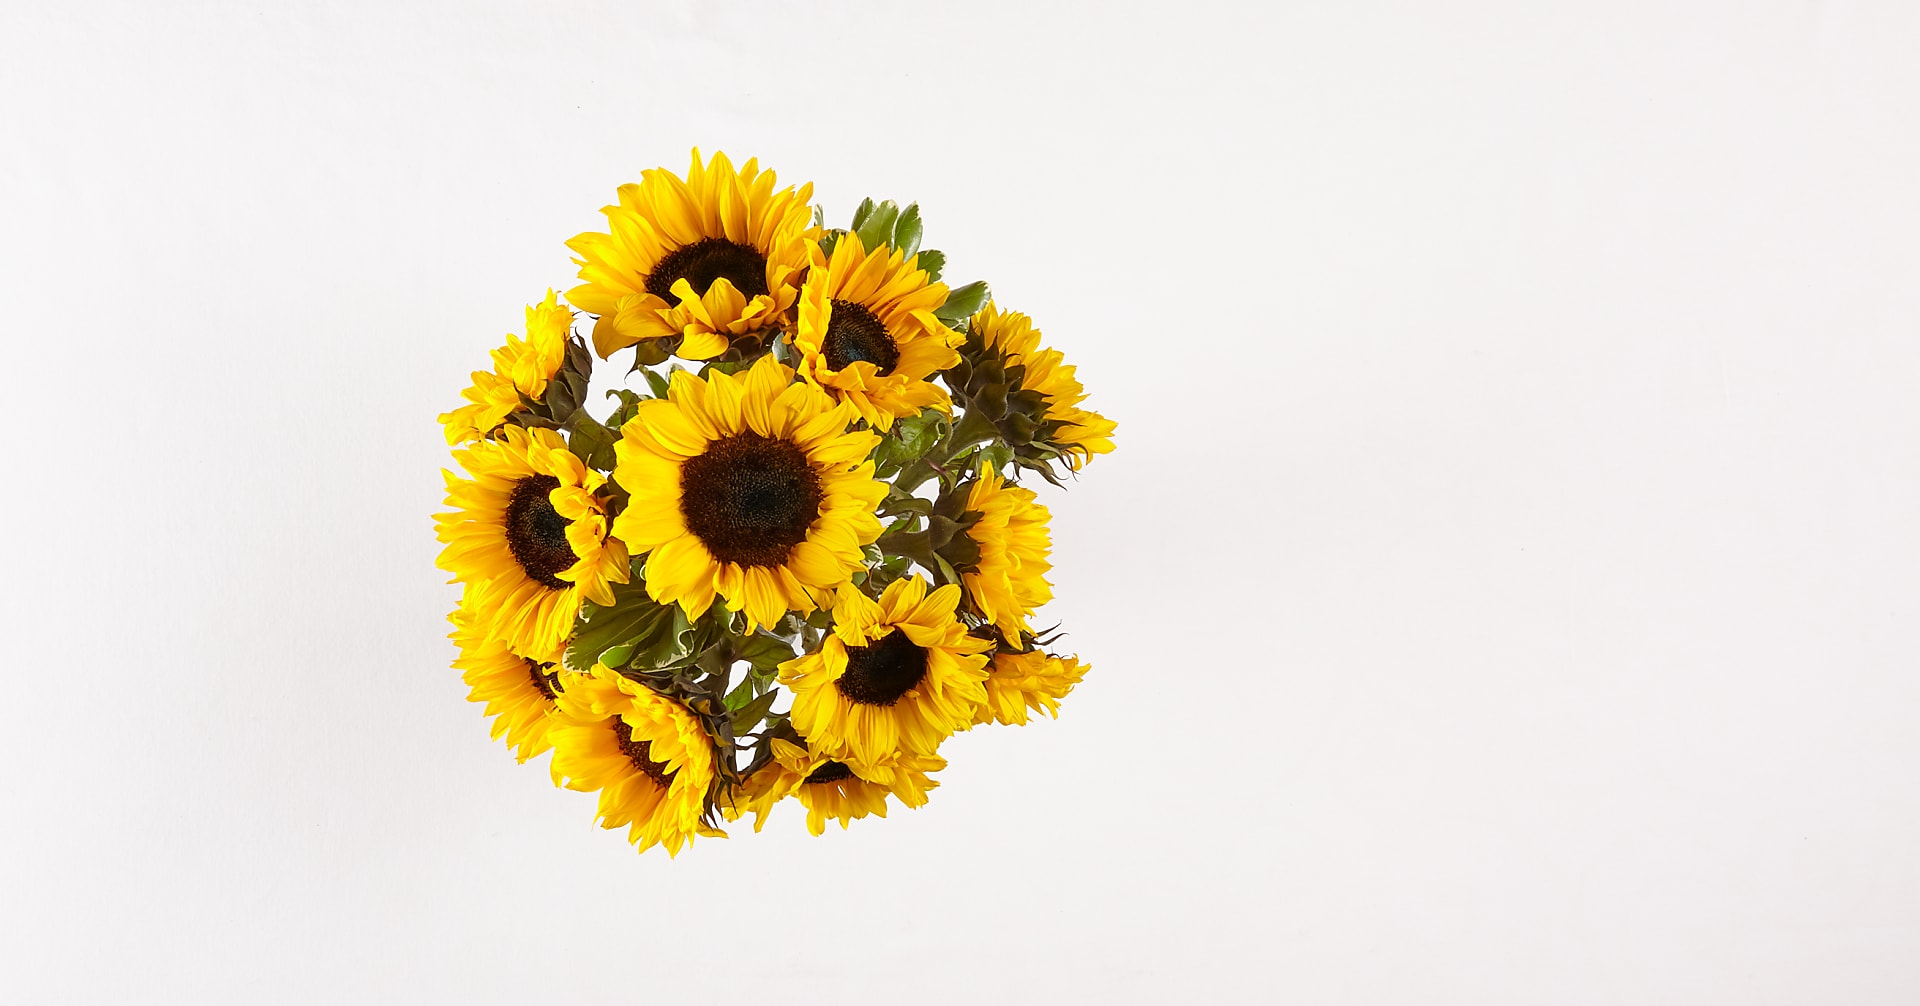 Honey Bee Sunflower Bouquet - Image 2 Of 2